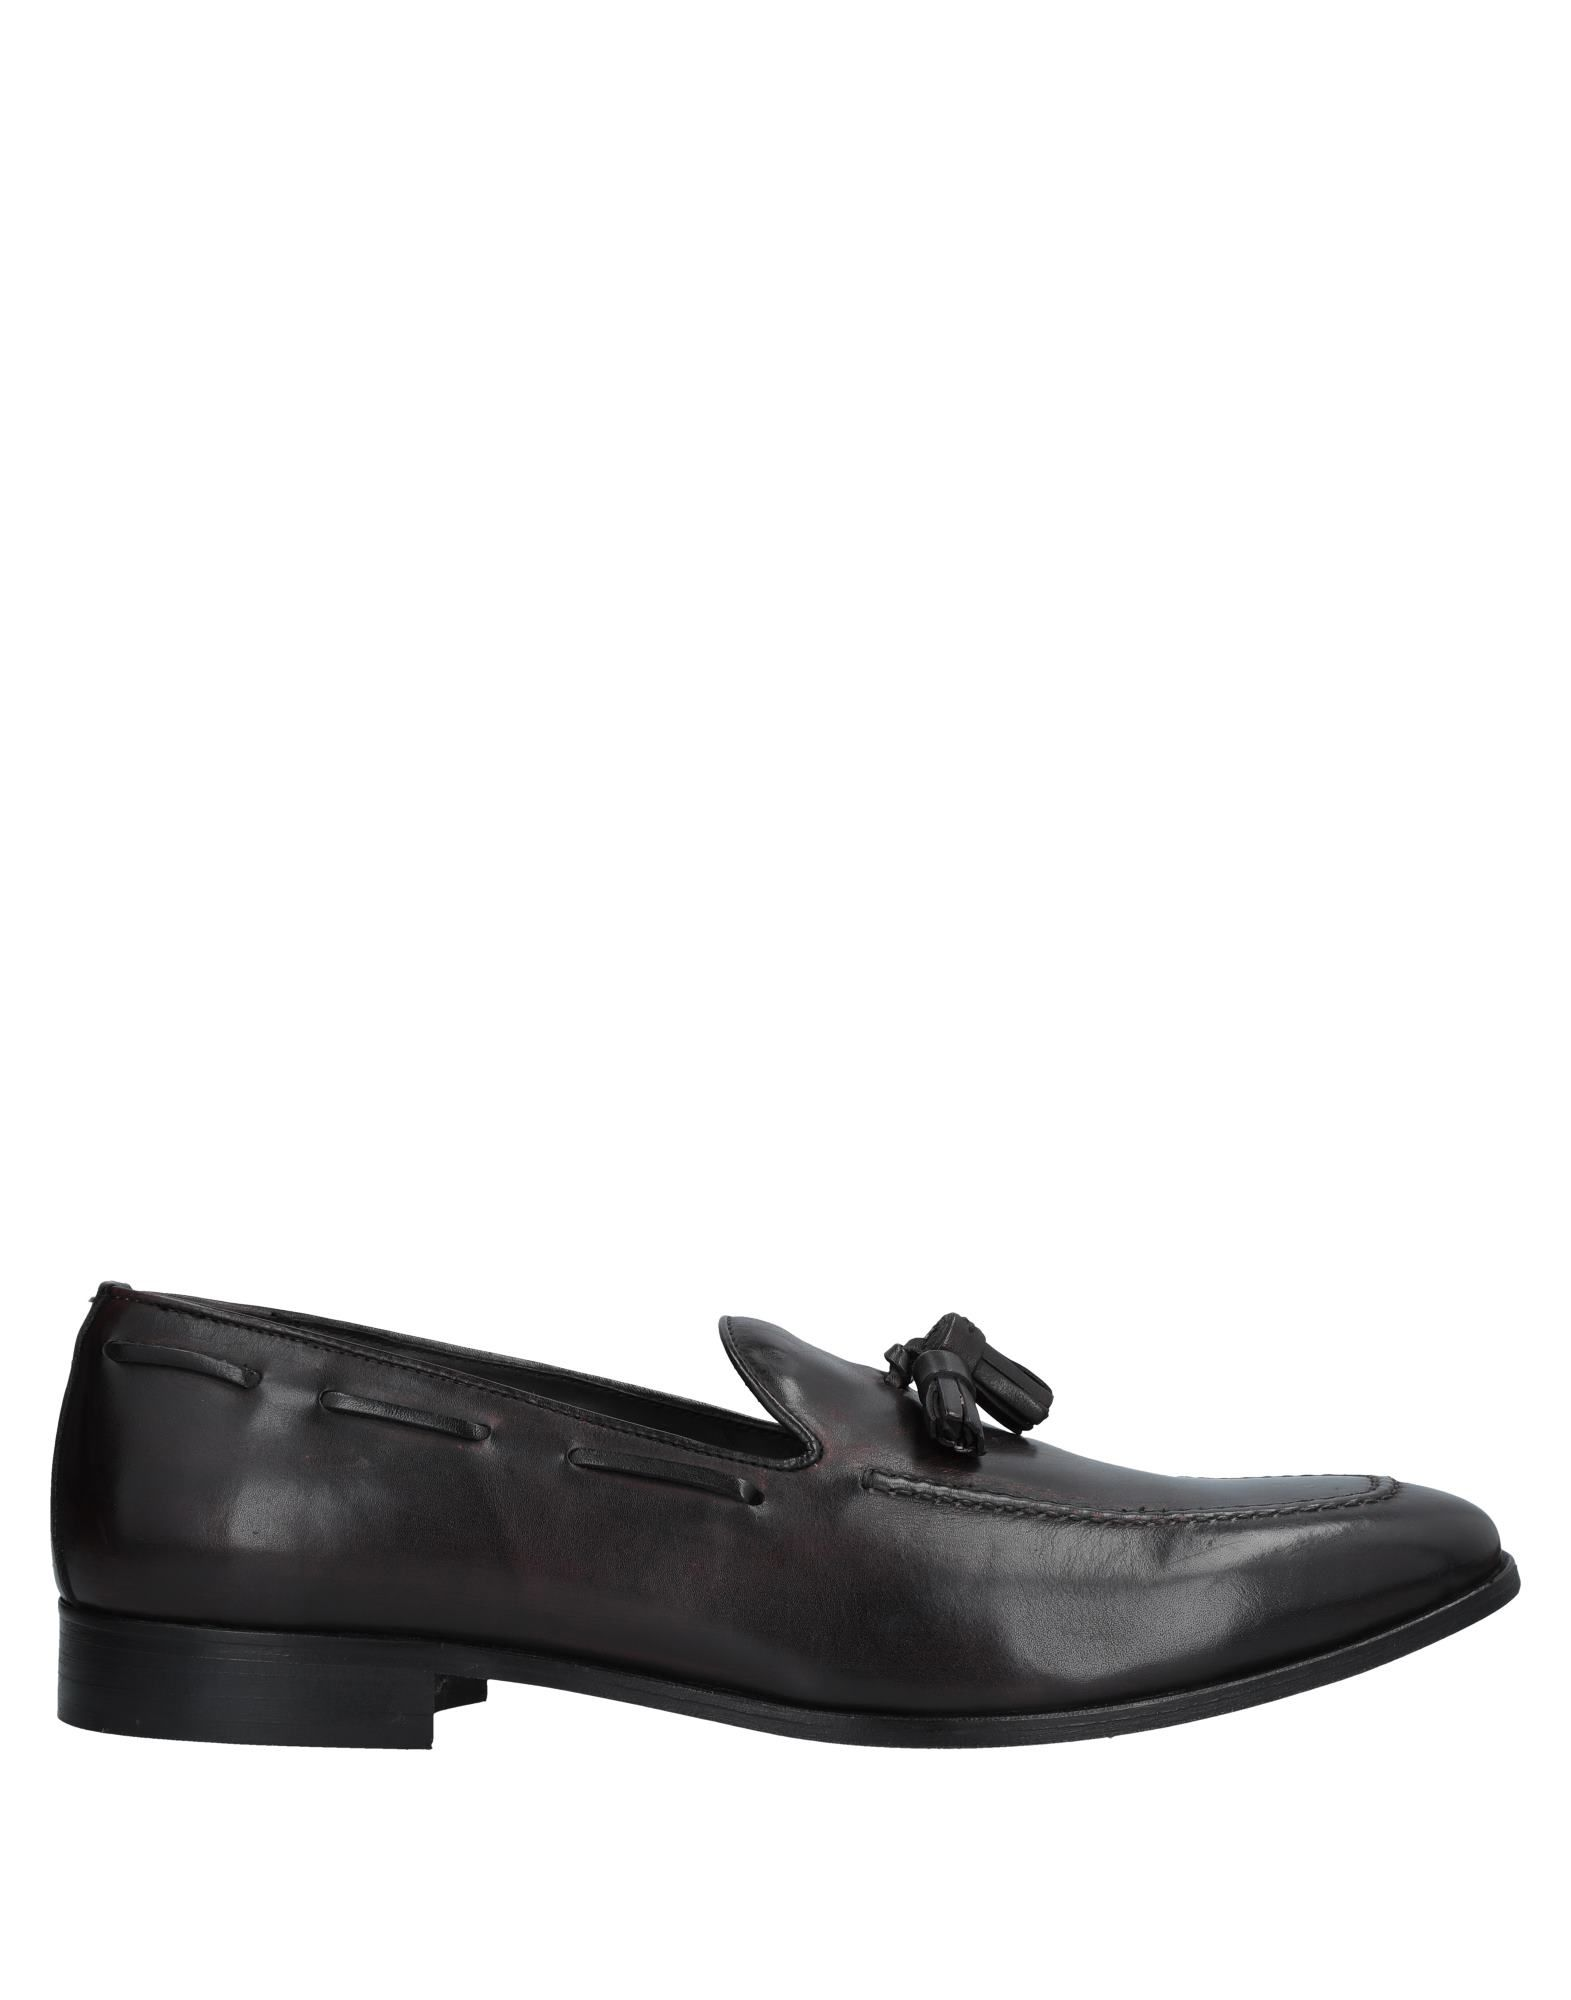 Roberto Della Roberto Croce Loafers - Men Roberto Della Della Croce Loafers online on  United Kingdom - 11530688OG a65be7